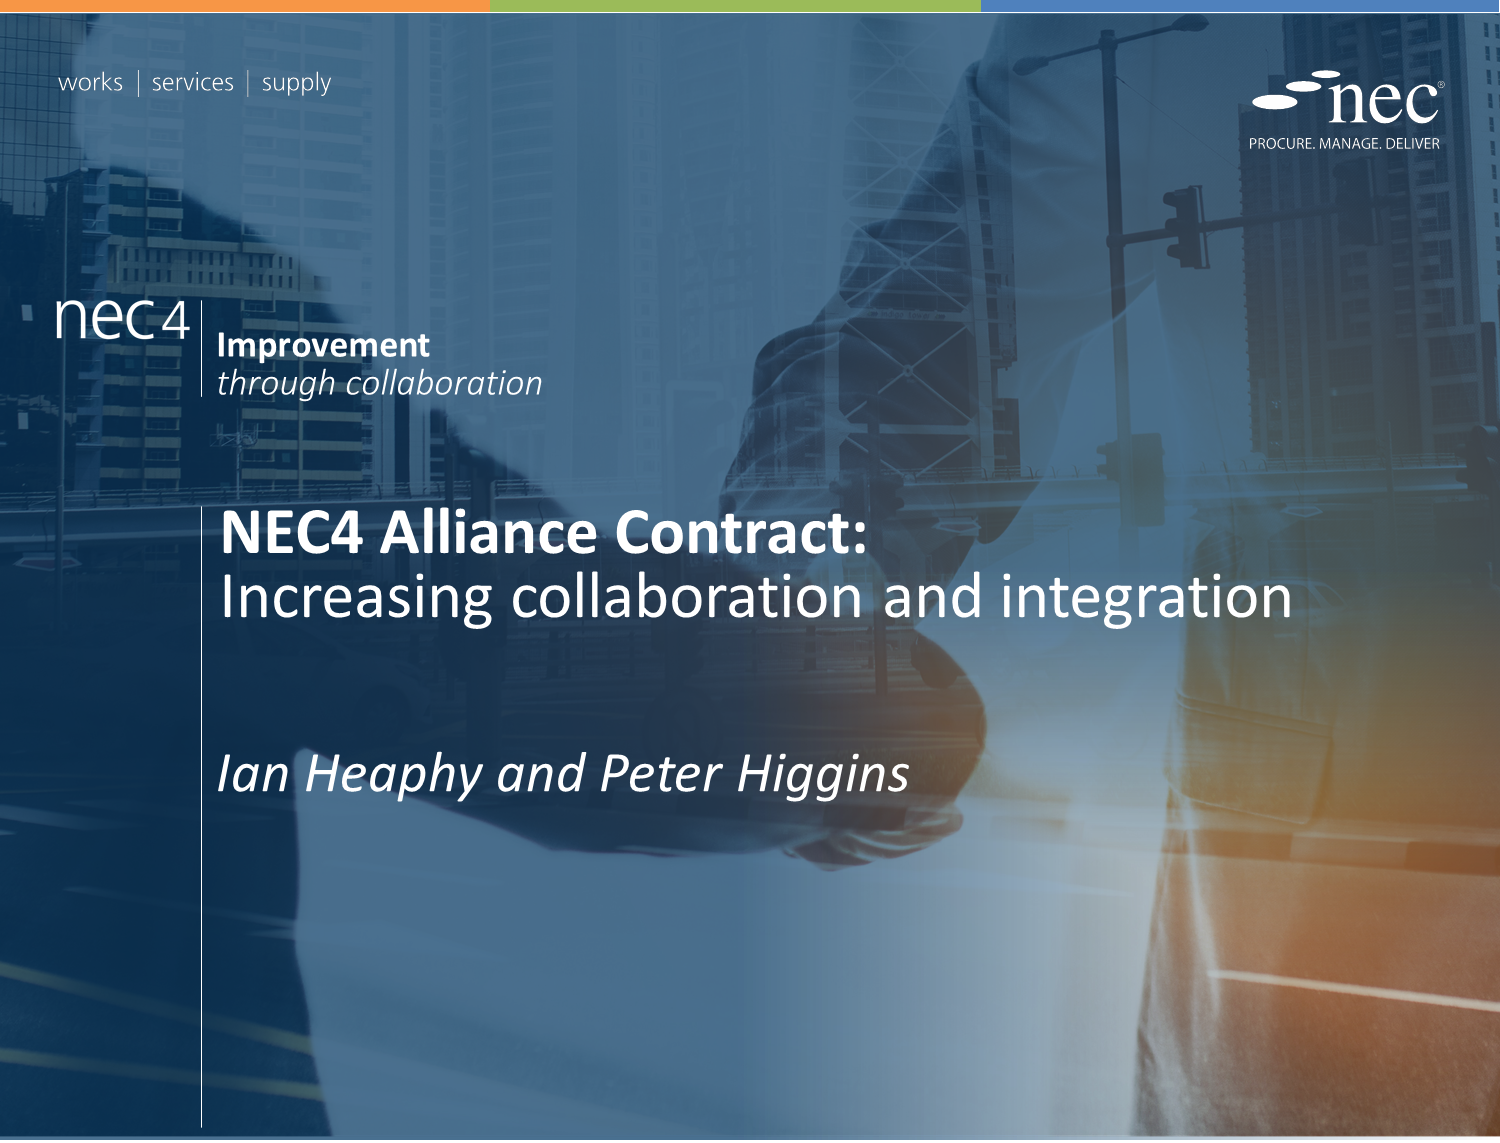 NEC4 Alliance Contract